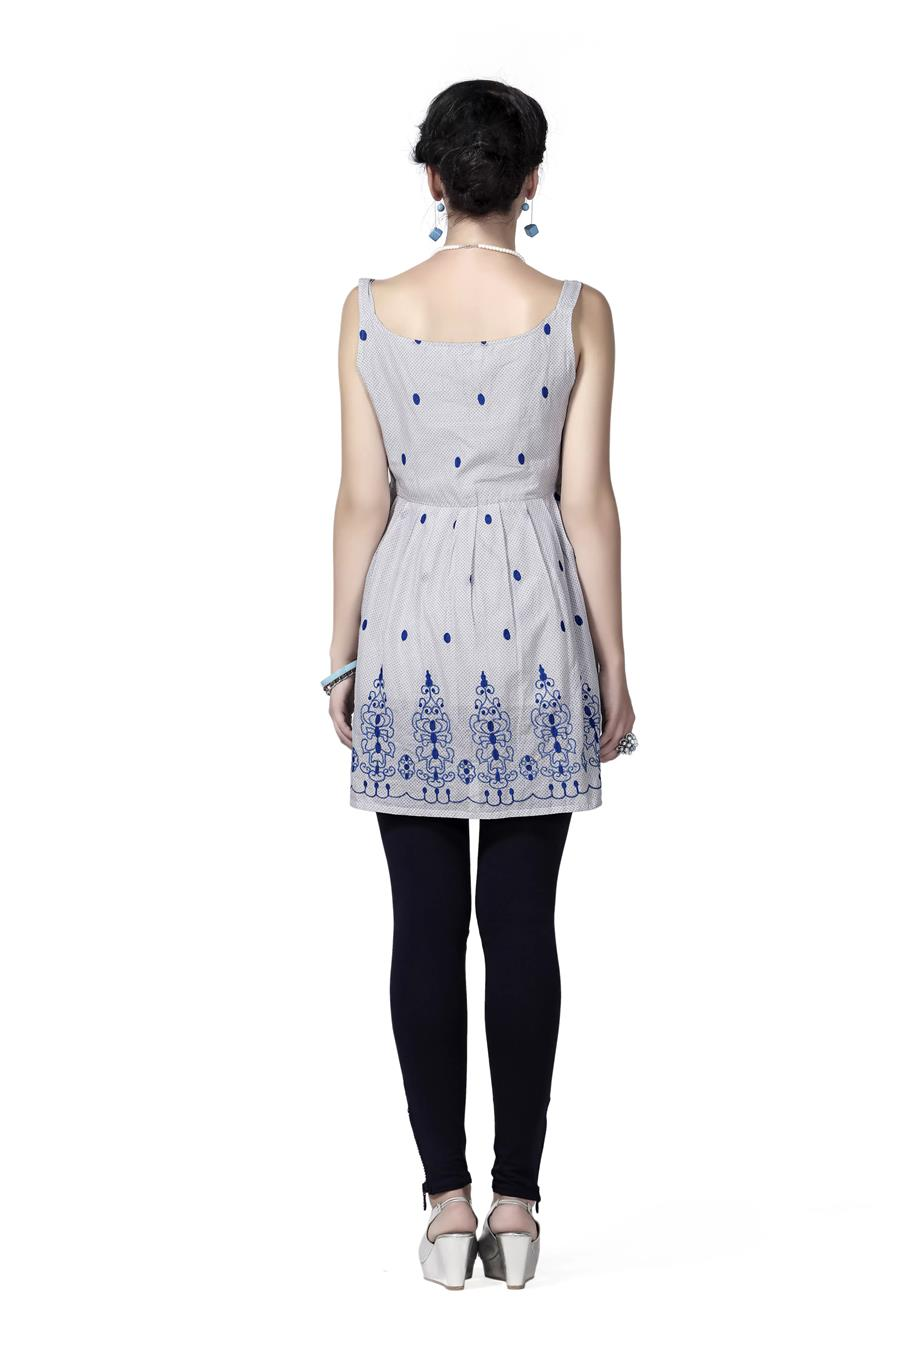 Innovative presents Embroidery Sleevless Tunic Made from cotton Voile with inner